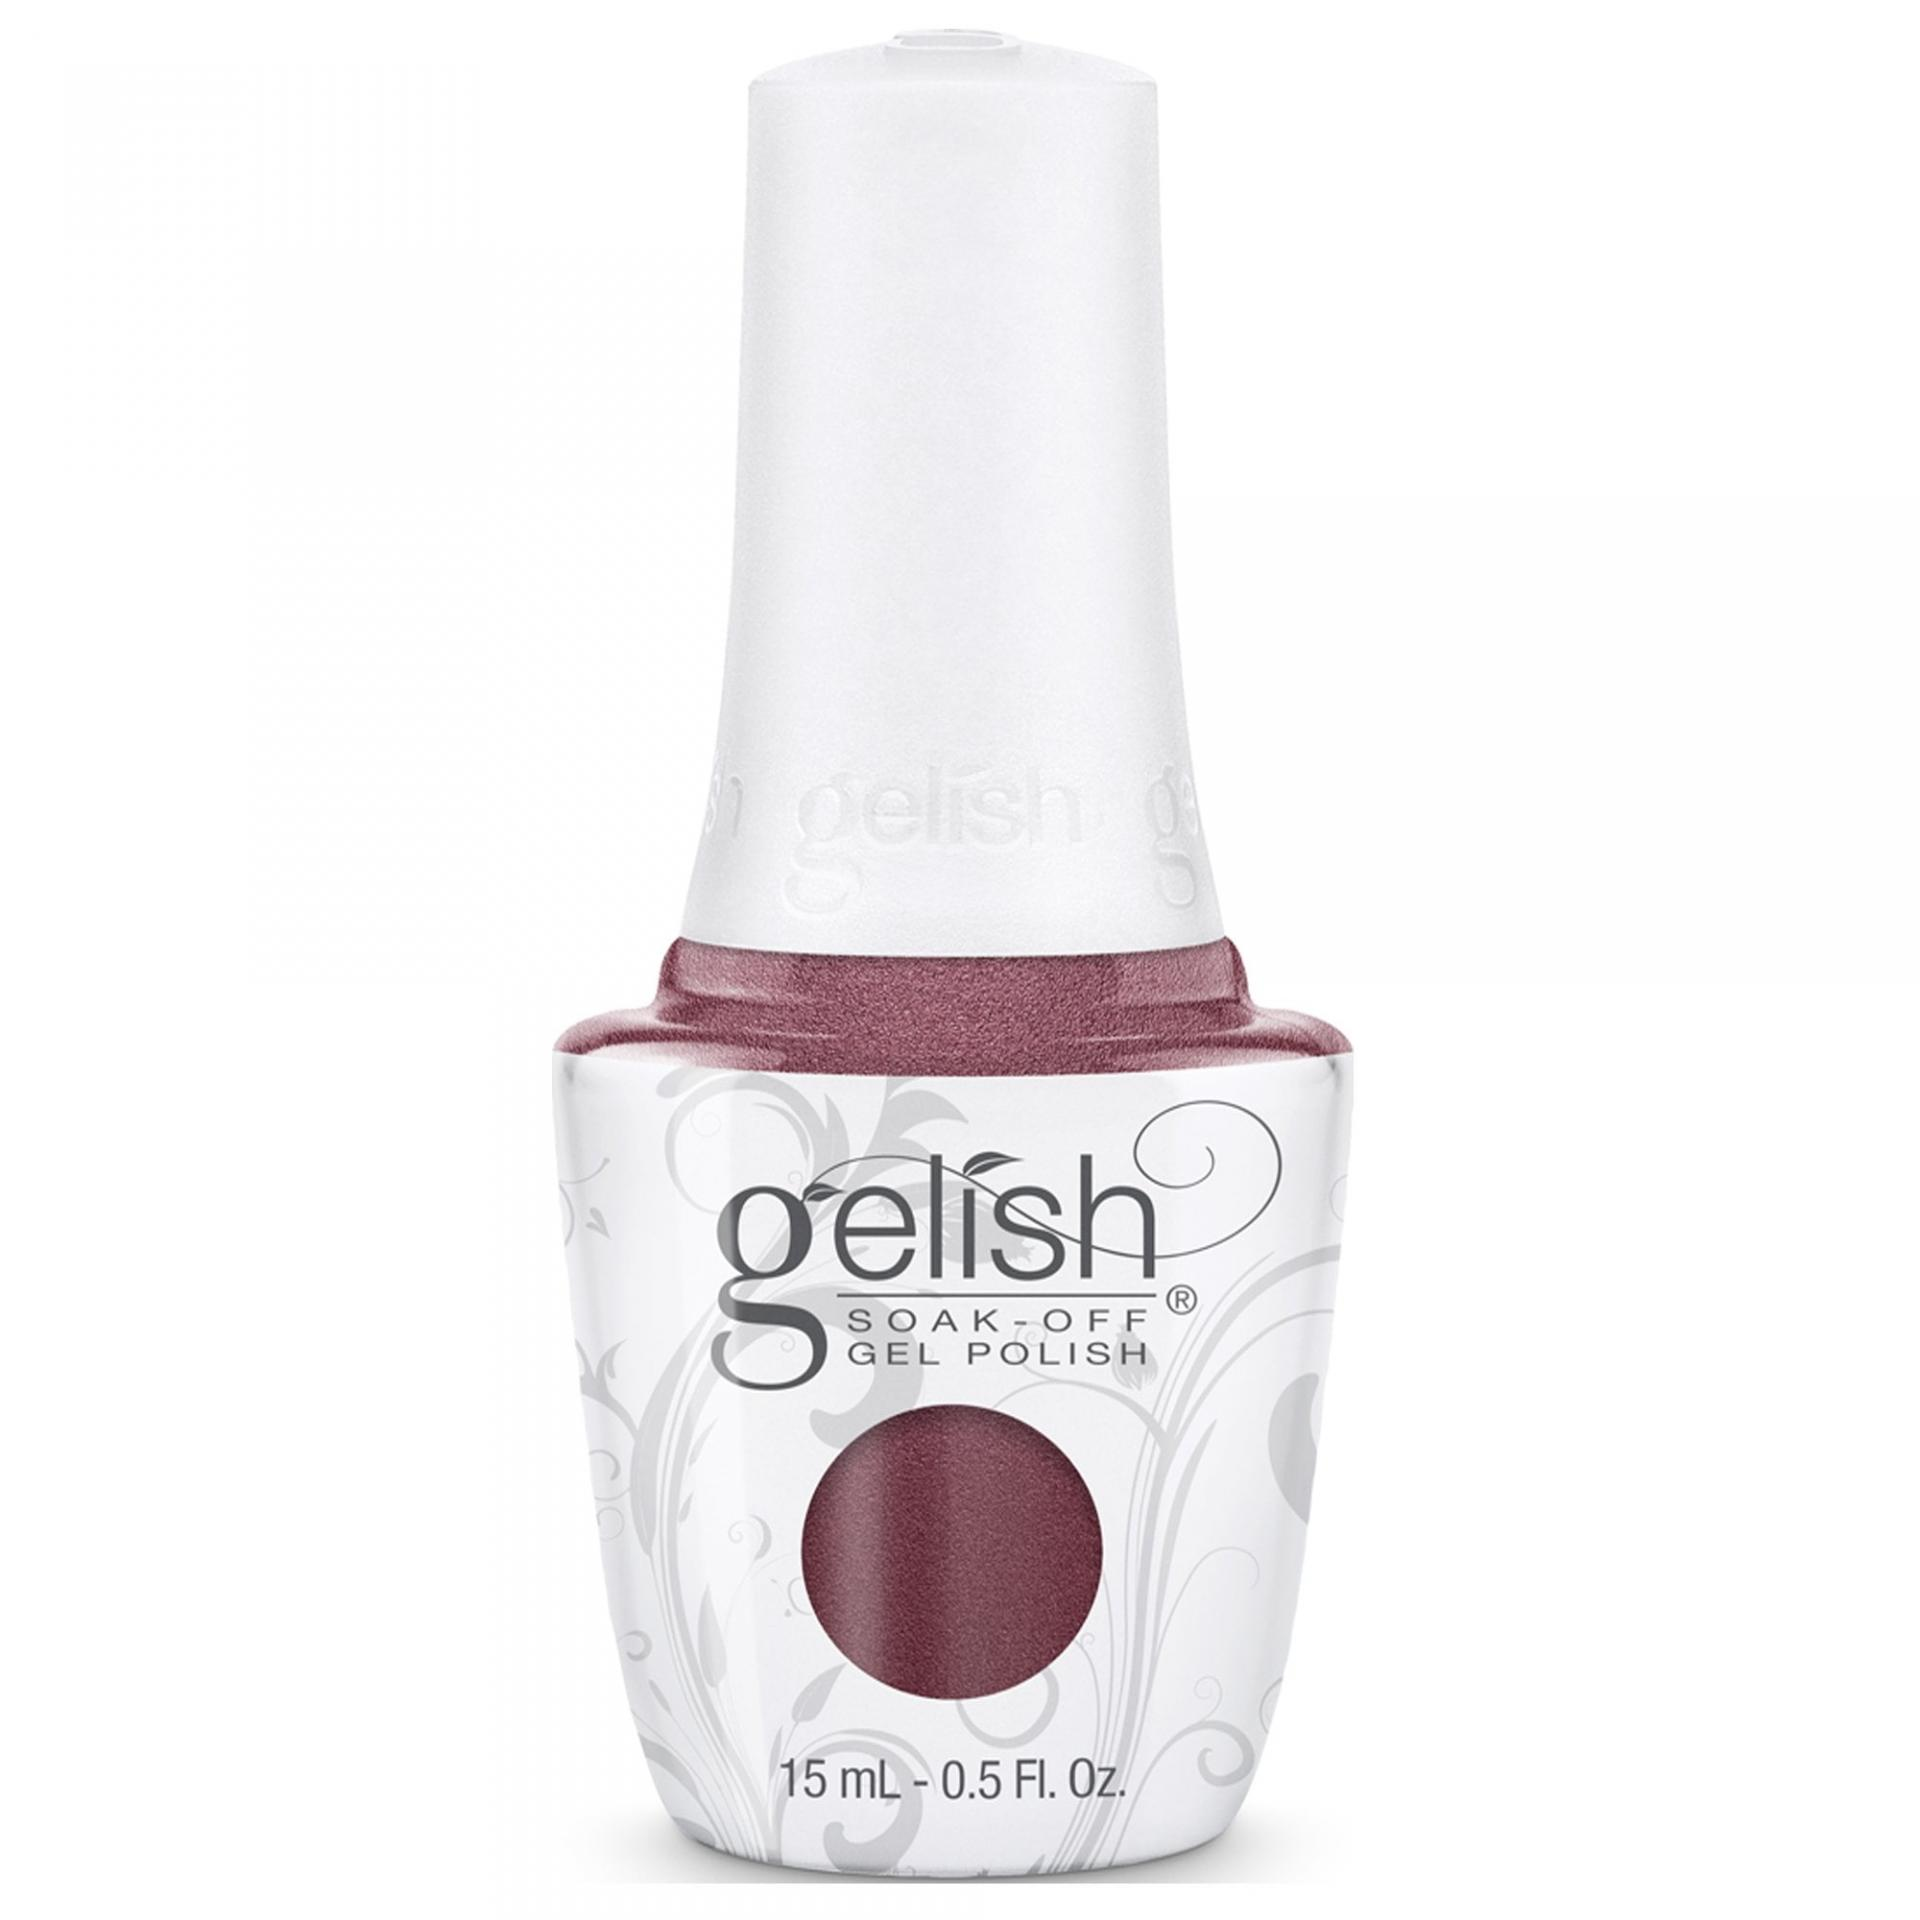 Gelish forever fabulous 2018 gel polish collection i prefer millionaires 15ml 1110331 p25752 100382 zoom 1